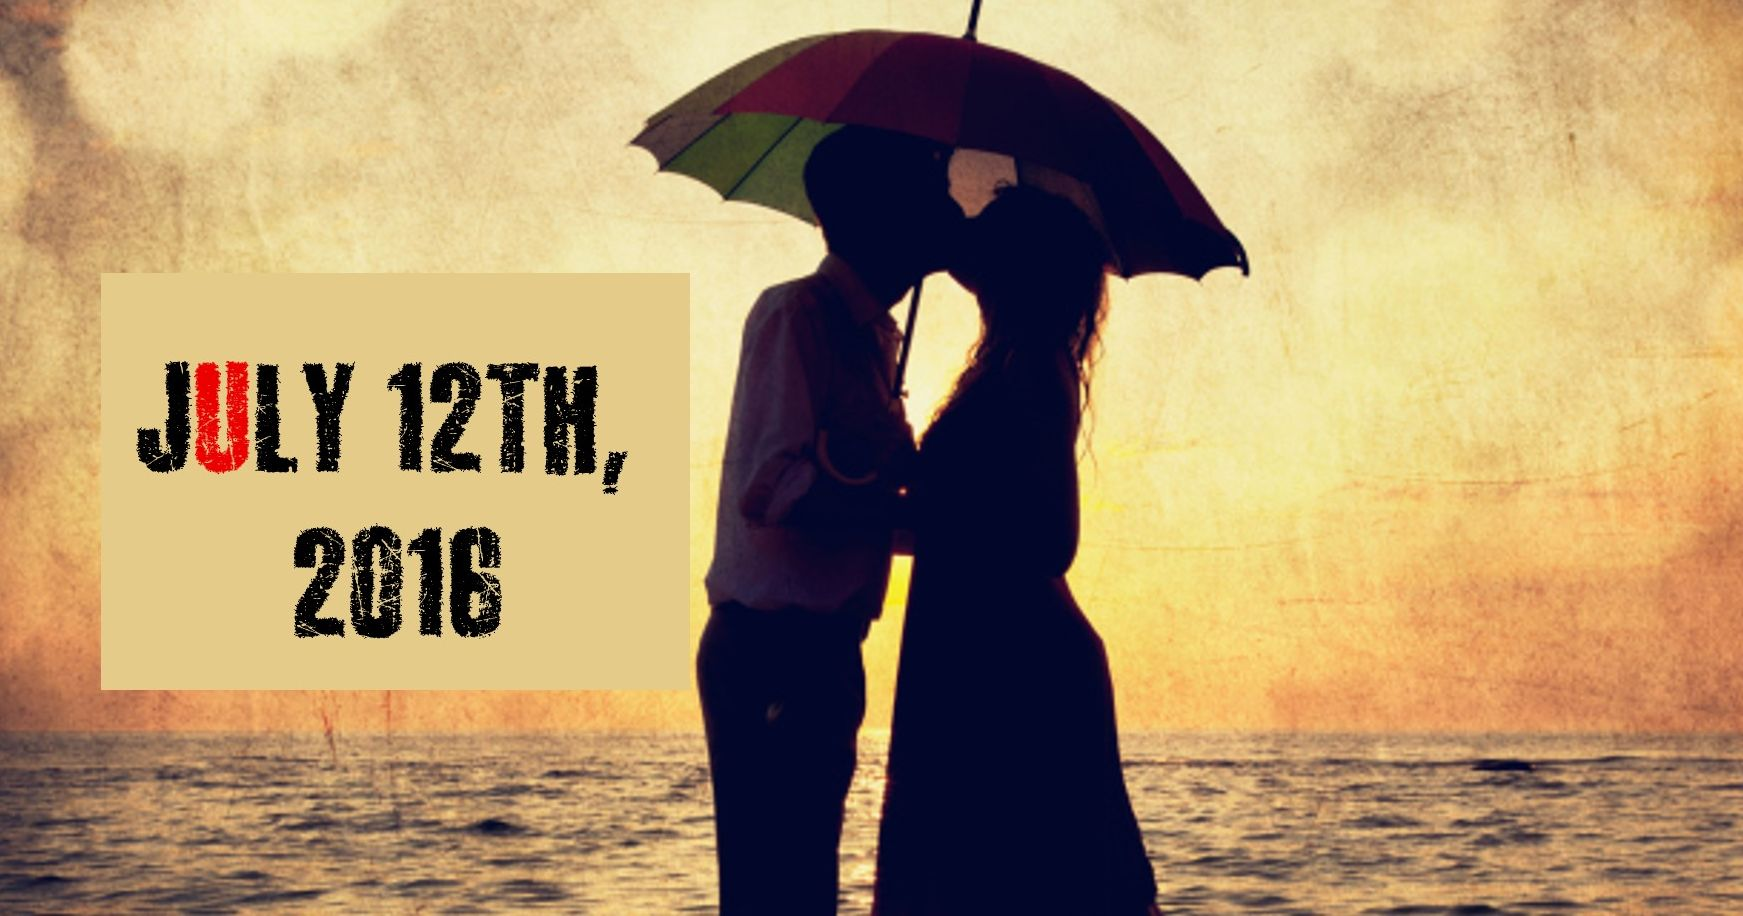 What Date Will You Meet Your Soulmate? | Playbuzz